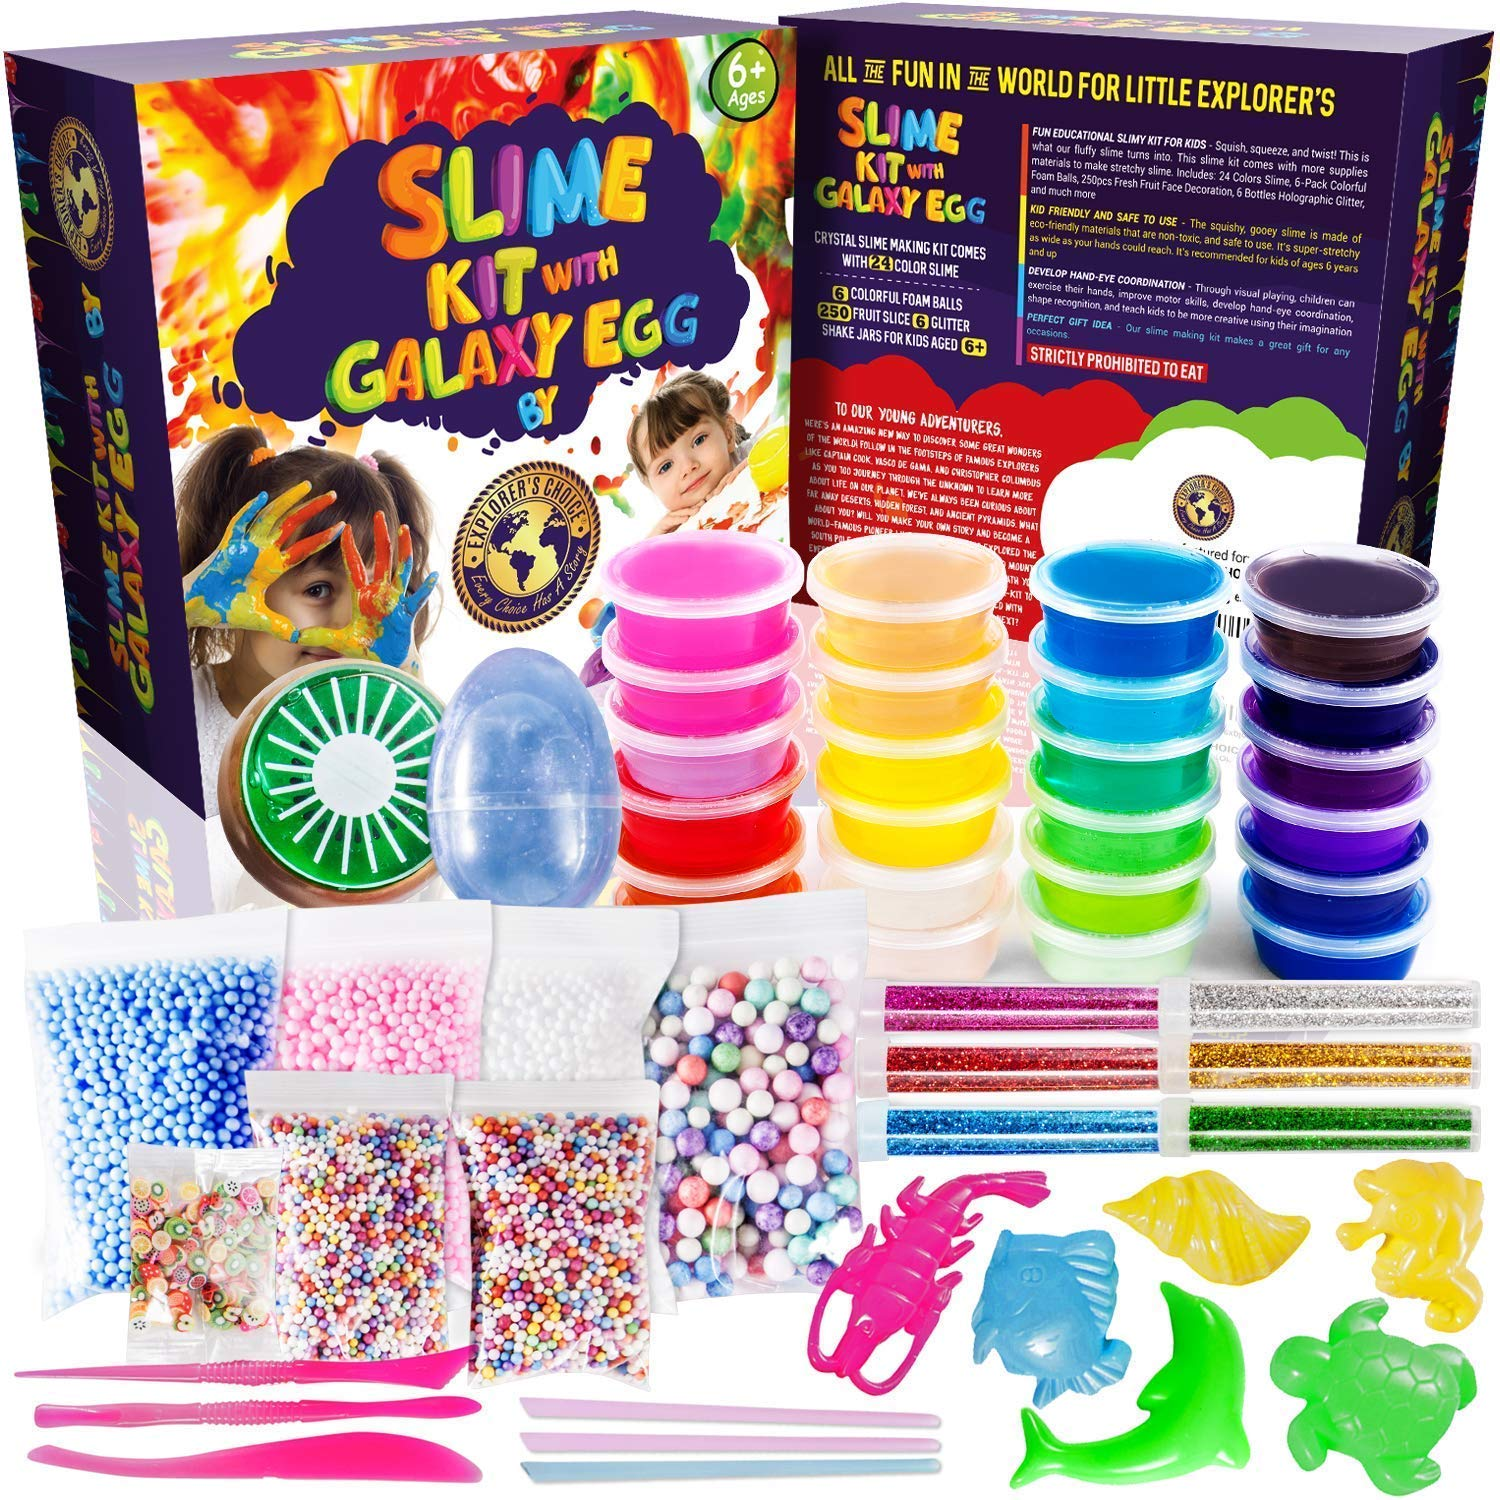 Slime Kit 2018 with Galaxy Egg include 24 Color Crystal Slime Containers, Fruit slime, Straws, Fruit slices, Foam balls and more supplies; New Slime Making Kit for Girls and Boys Kids